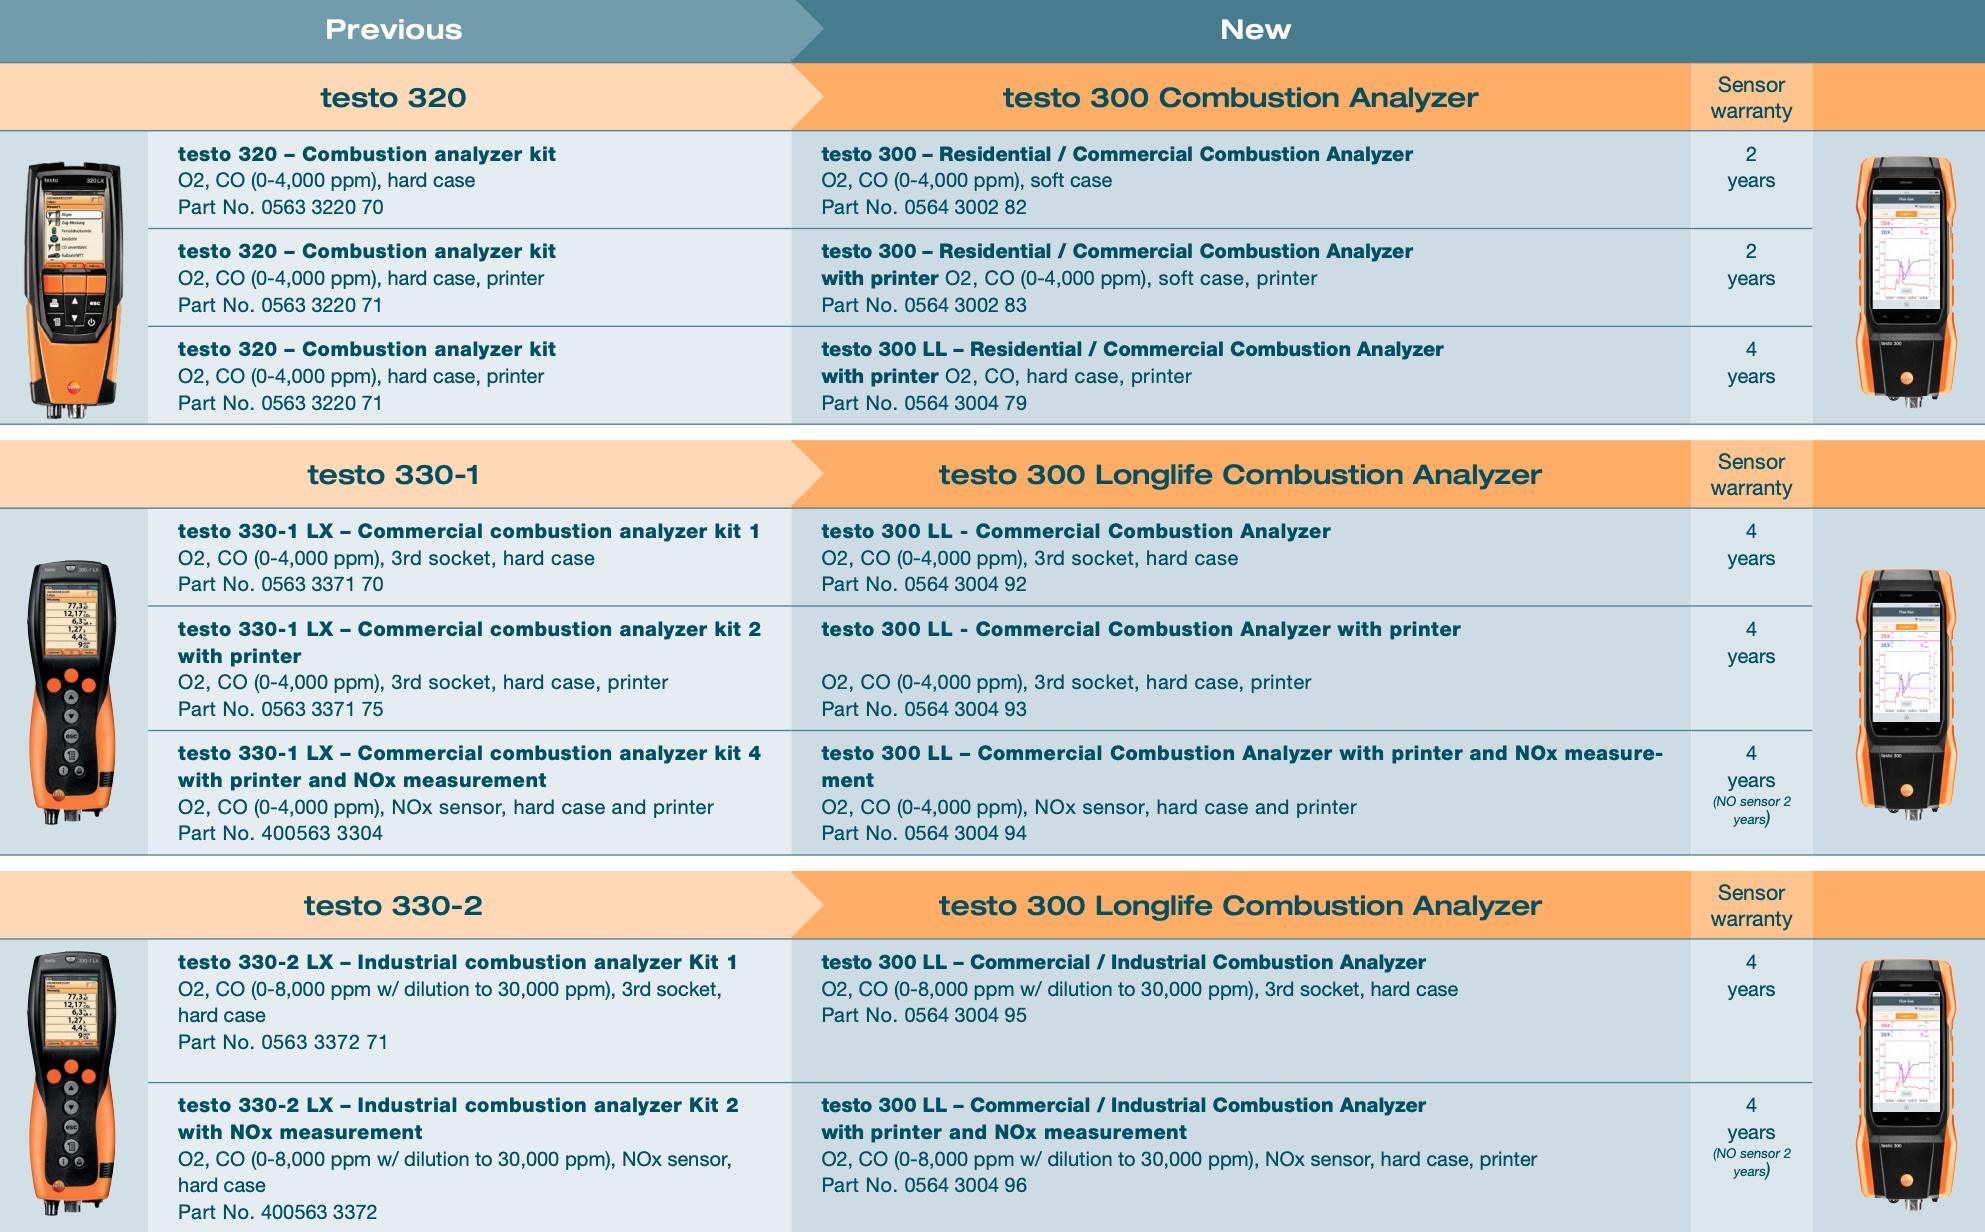 Testo Combustion Comparison